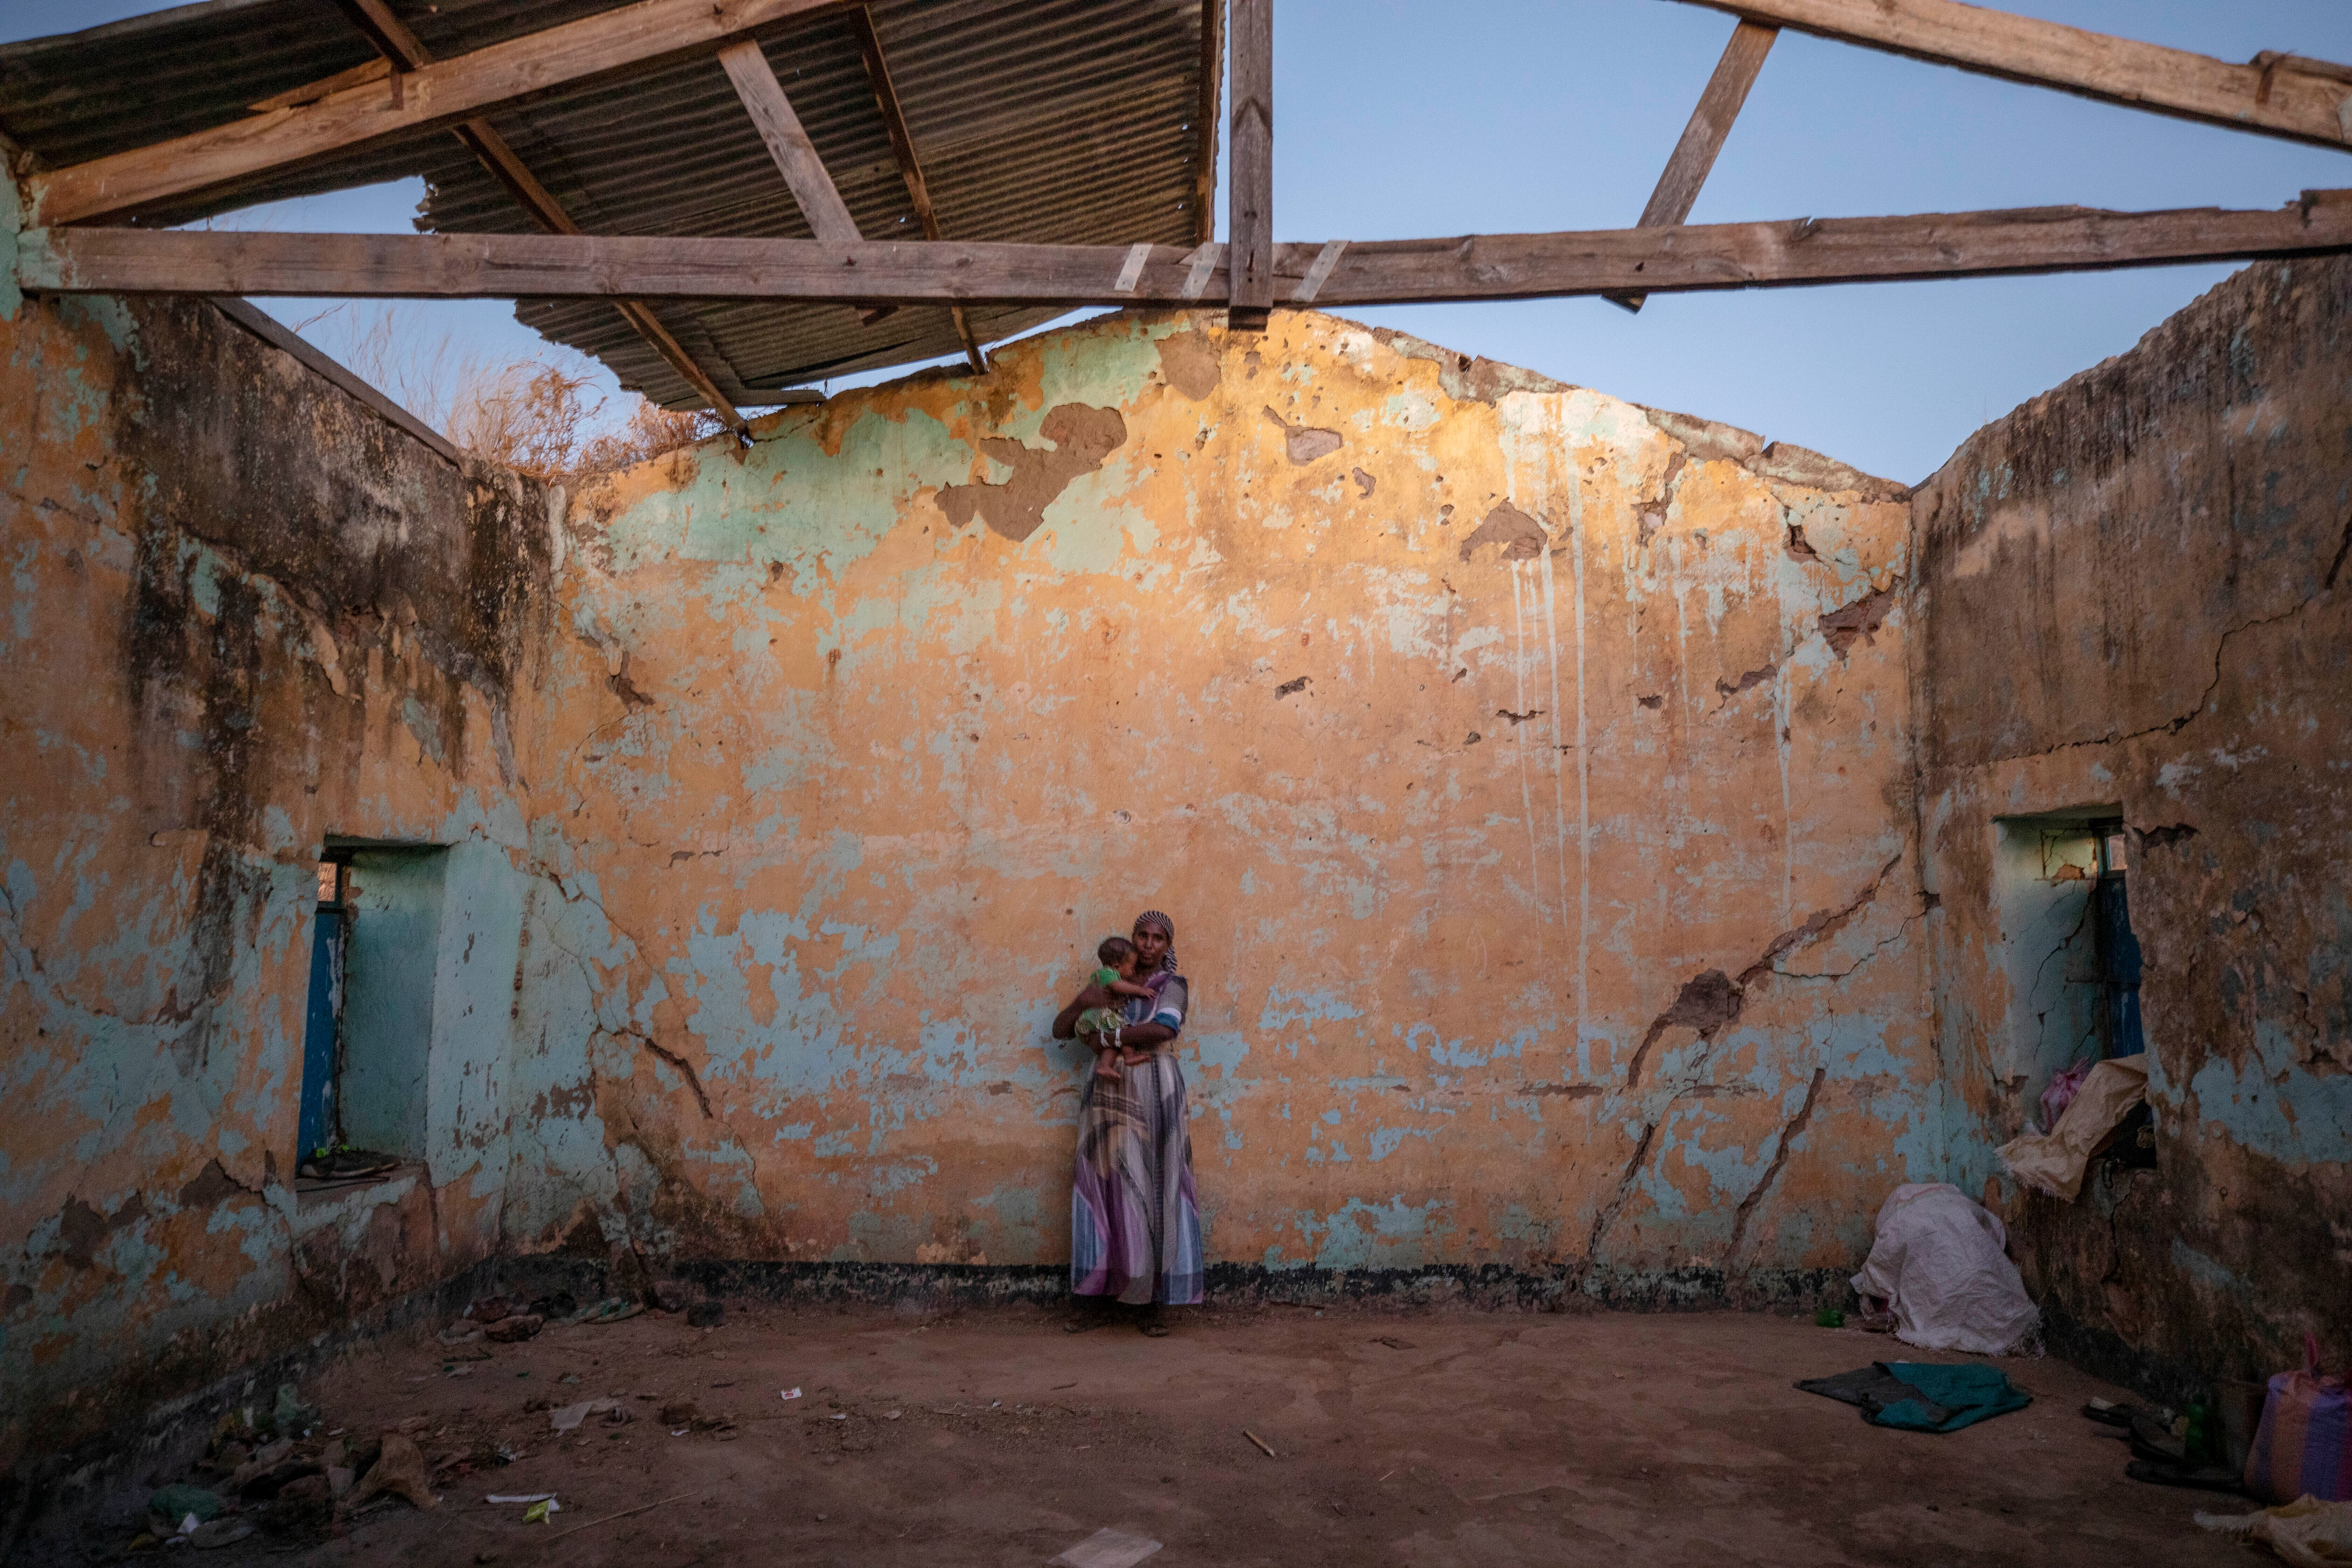 A woman who fled the conflict in Ethiopia's Tigray region holds her child inside a temporary shelter at Umm Rakouba refugee camp in Qadarif, Sudan.